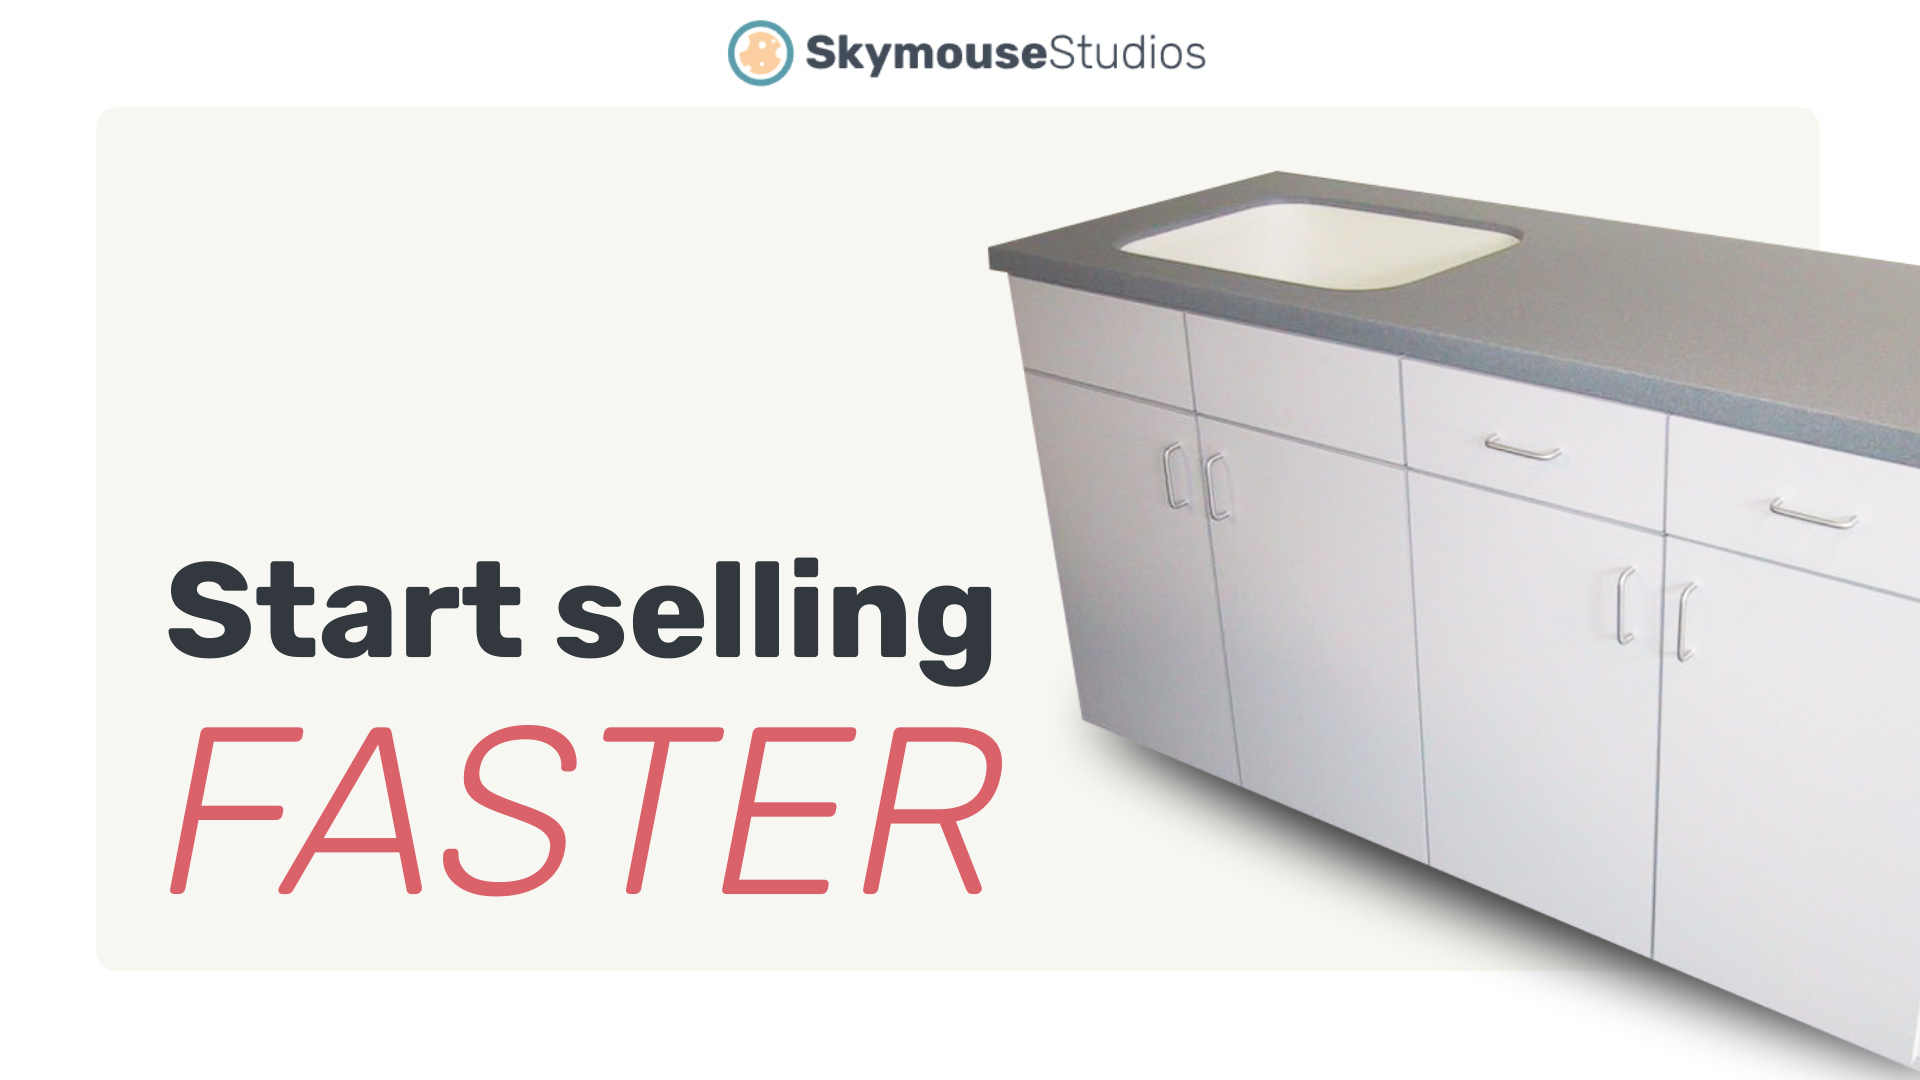 Create an initial offer to start selling faster (with examples)